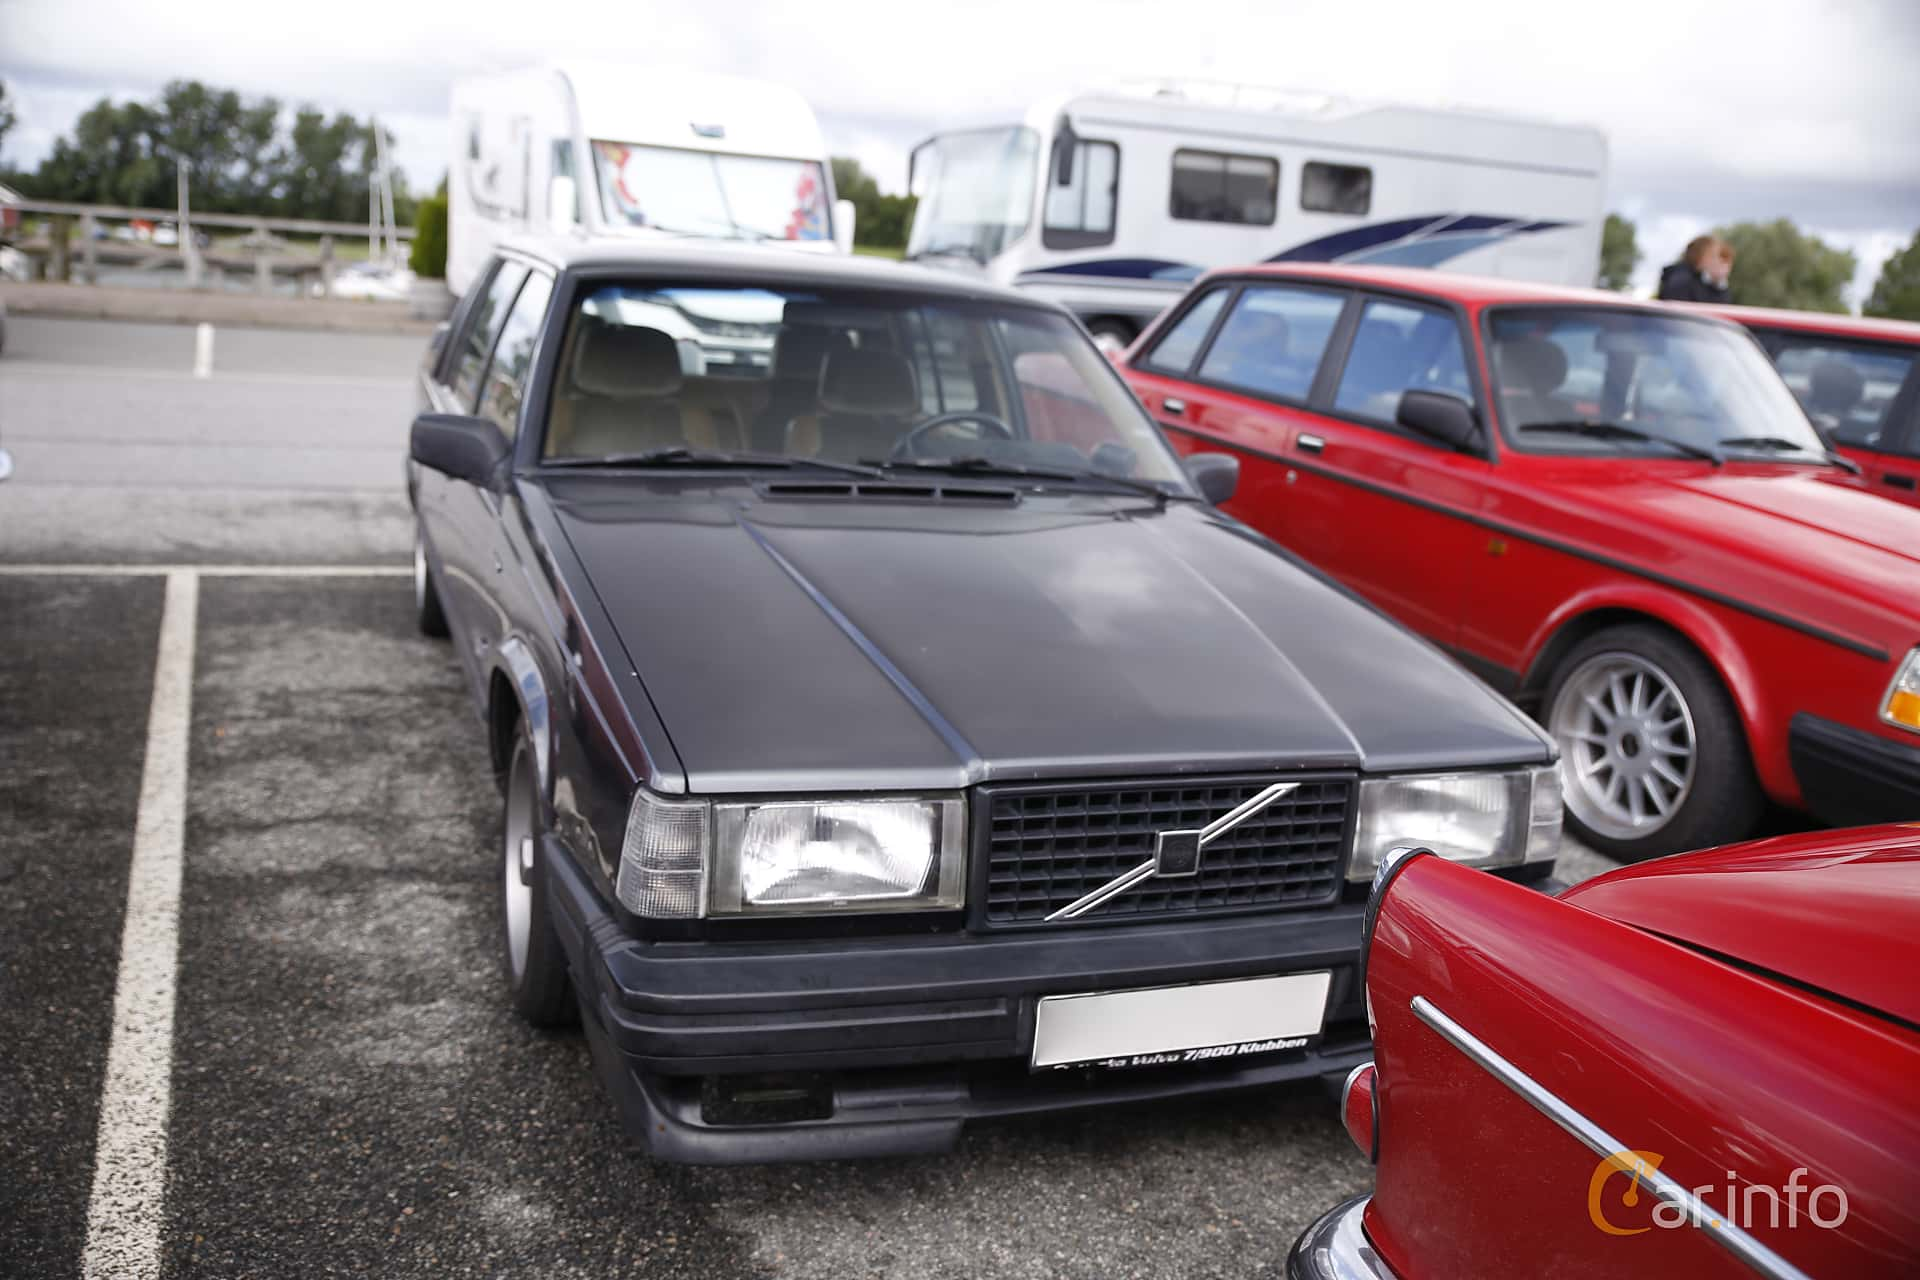 3 images of volvo 744 2 3 manual 162hp 1988 by franzhaenel rh car info 1988 Volvo 760 1992 Volvo